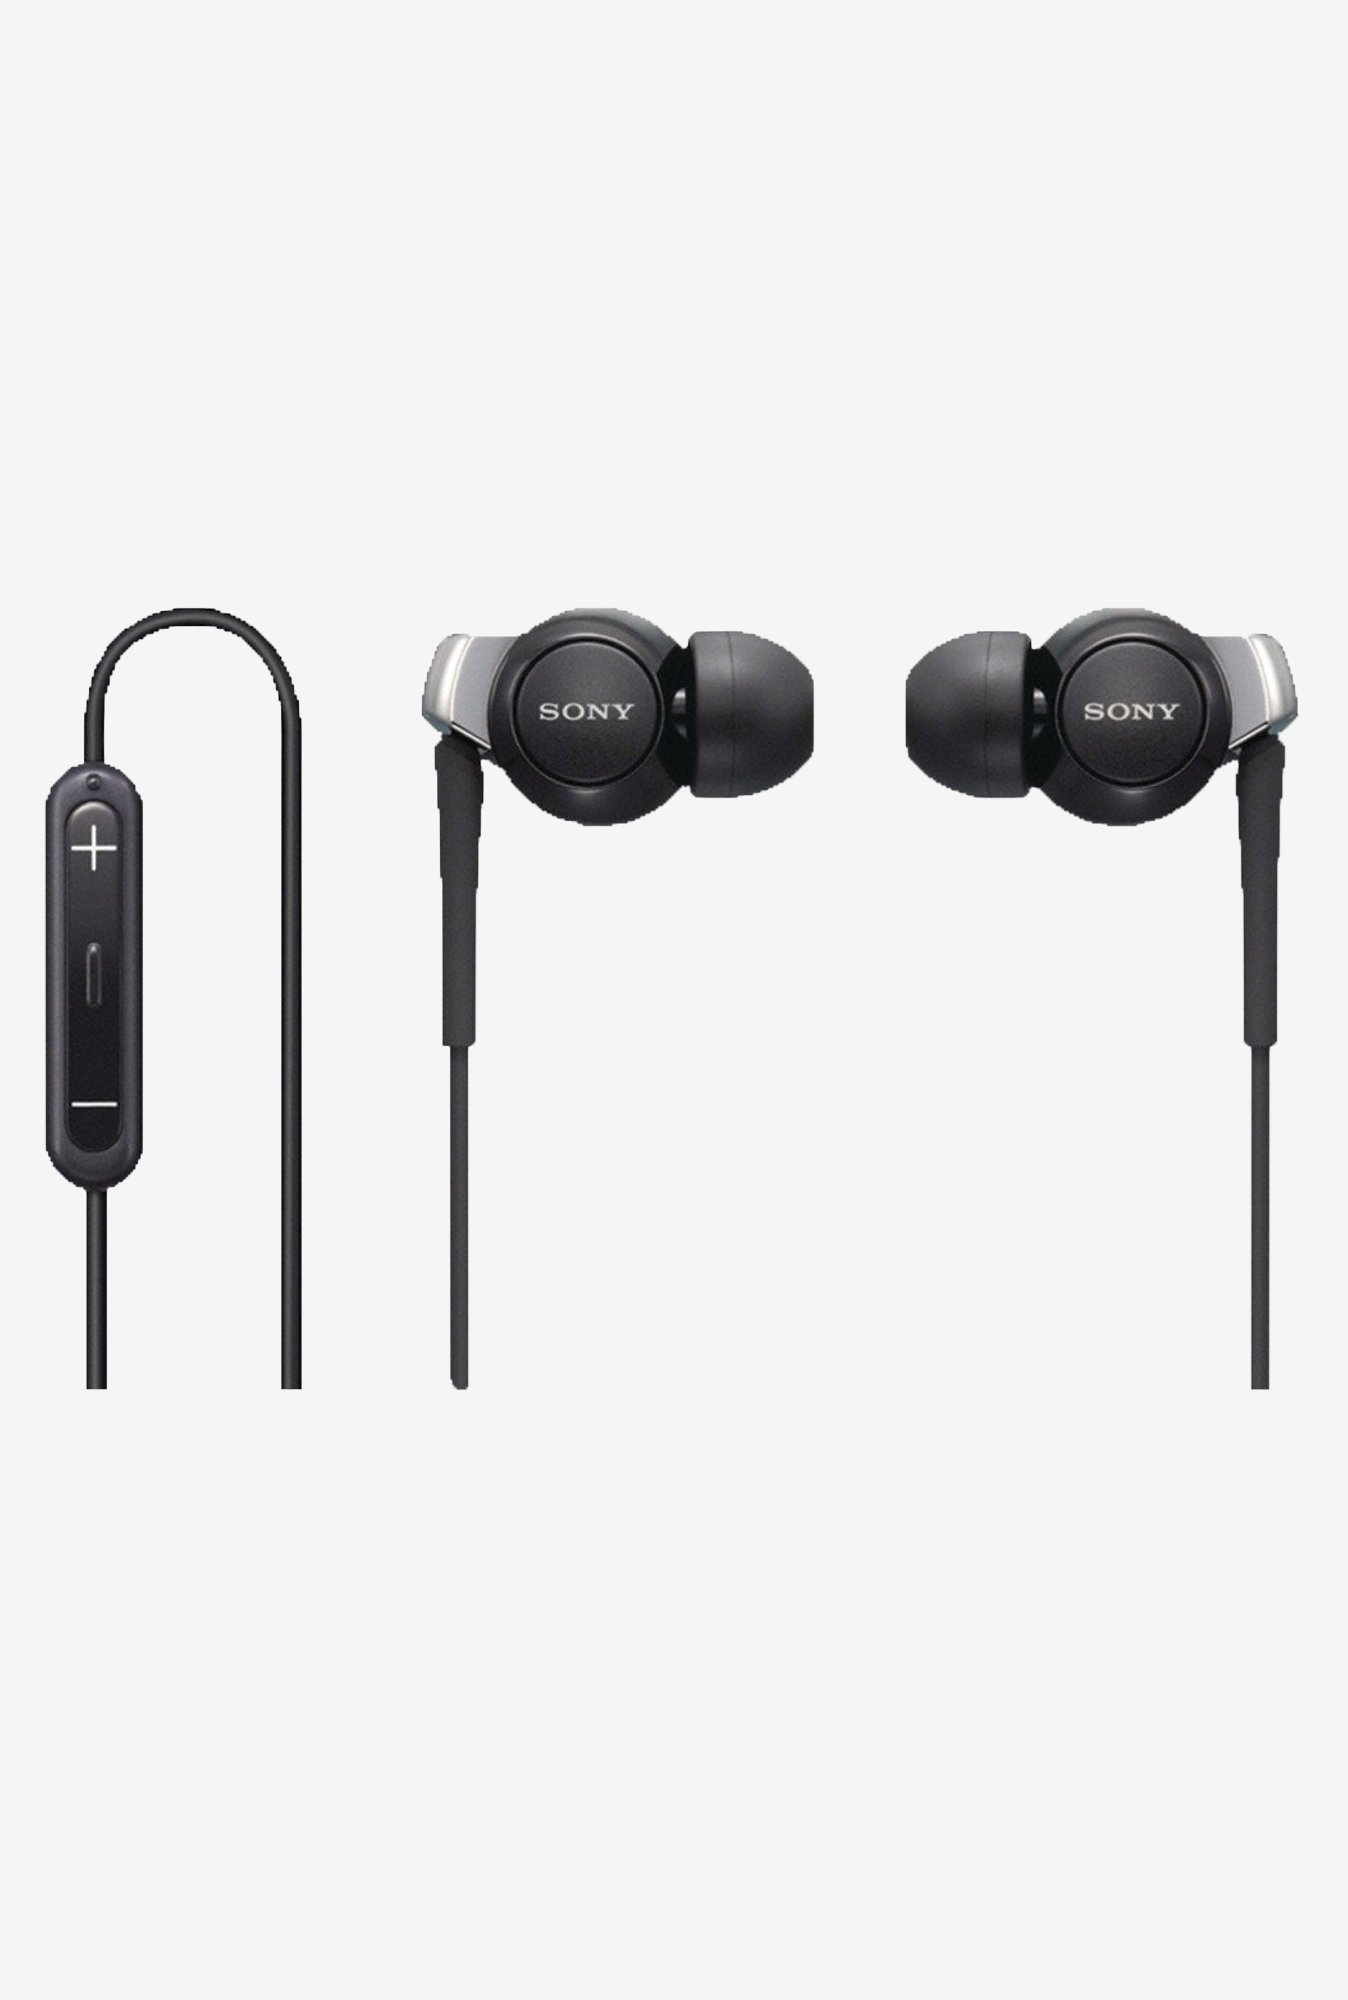 Sony DREX300iP Headphones (Discontinued by Manufacturer)